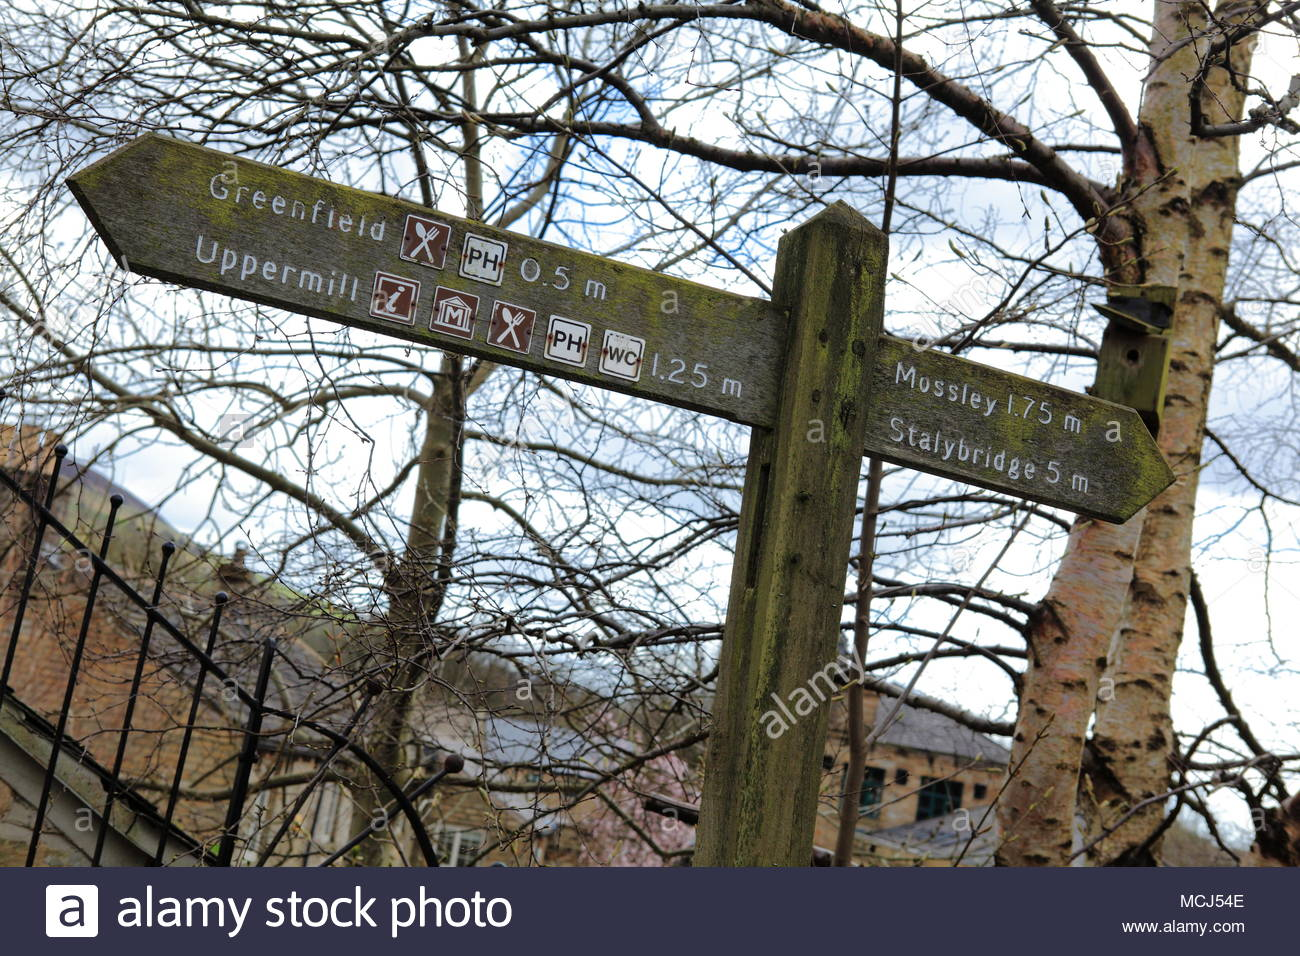 A Marker And Directional Sign Along The Huddersfield Canal At Friezland Greenfield England April 2018 - Stock Image